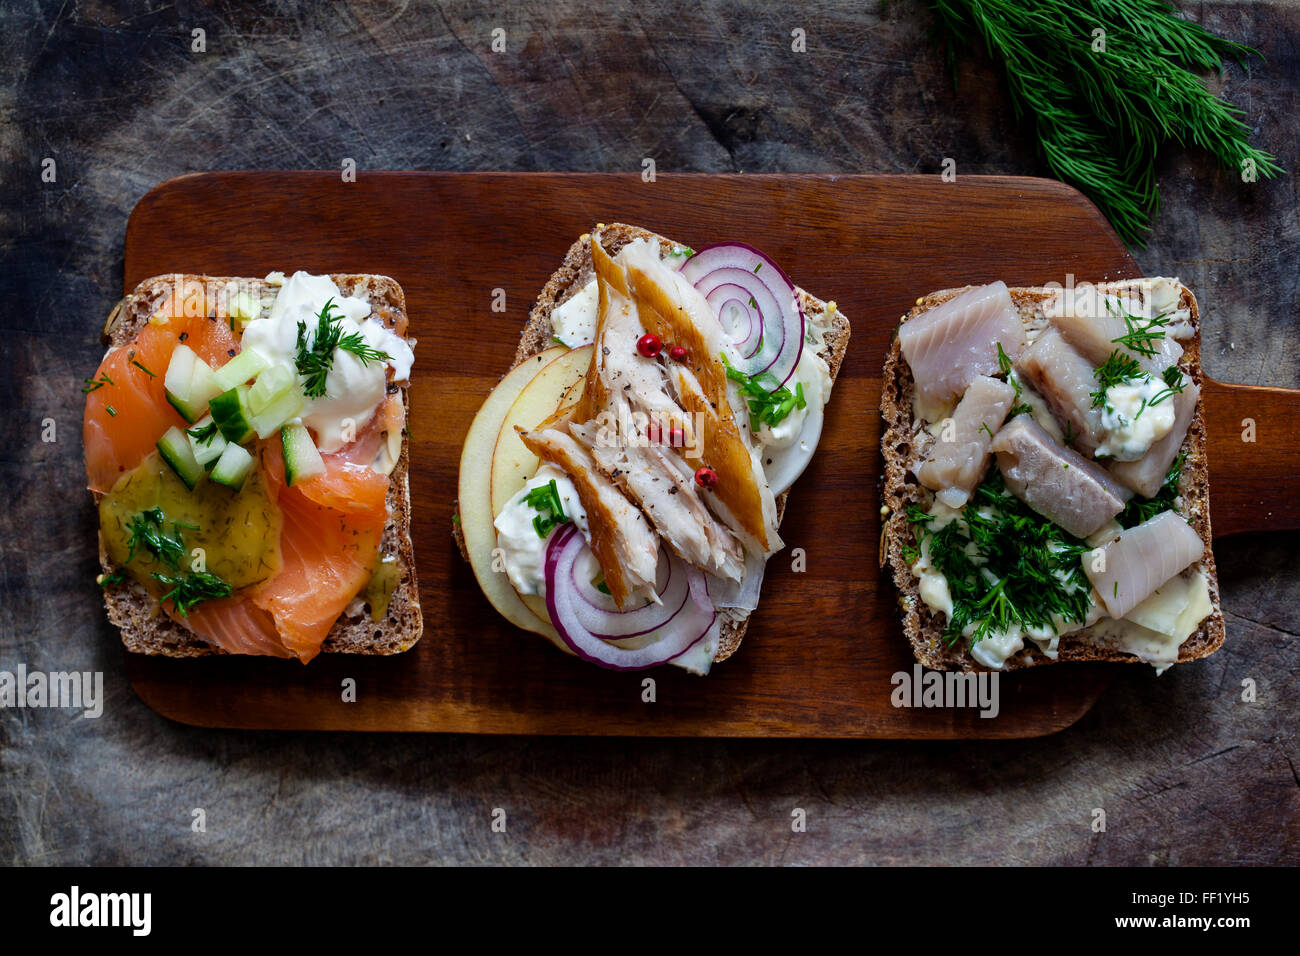 Scandinavian sandwiches with smoked mackerel, herrings and salmon - Stock Image